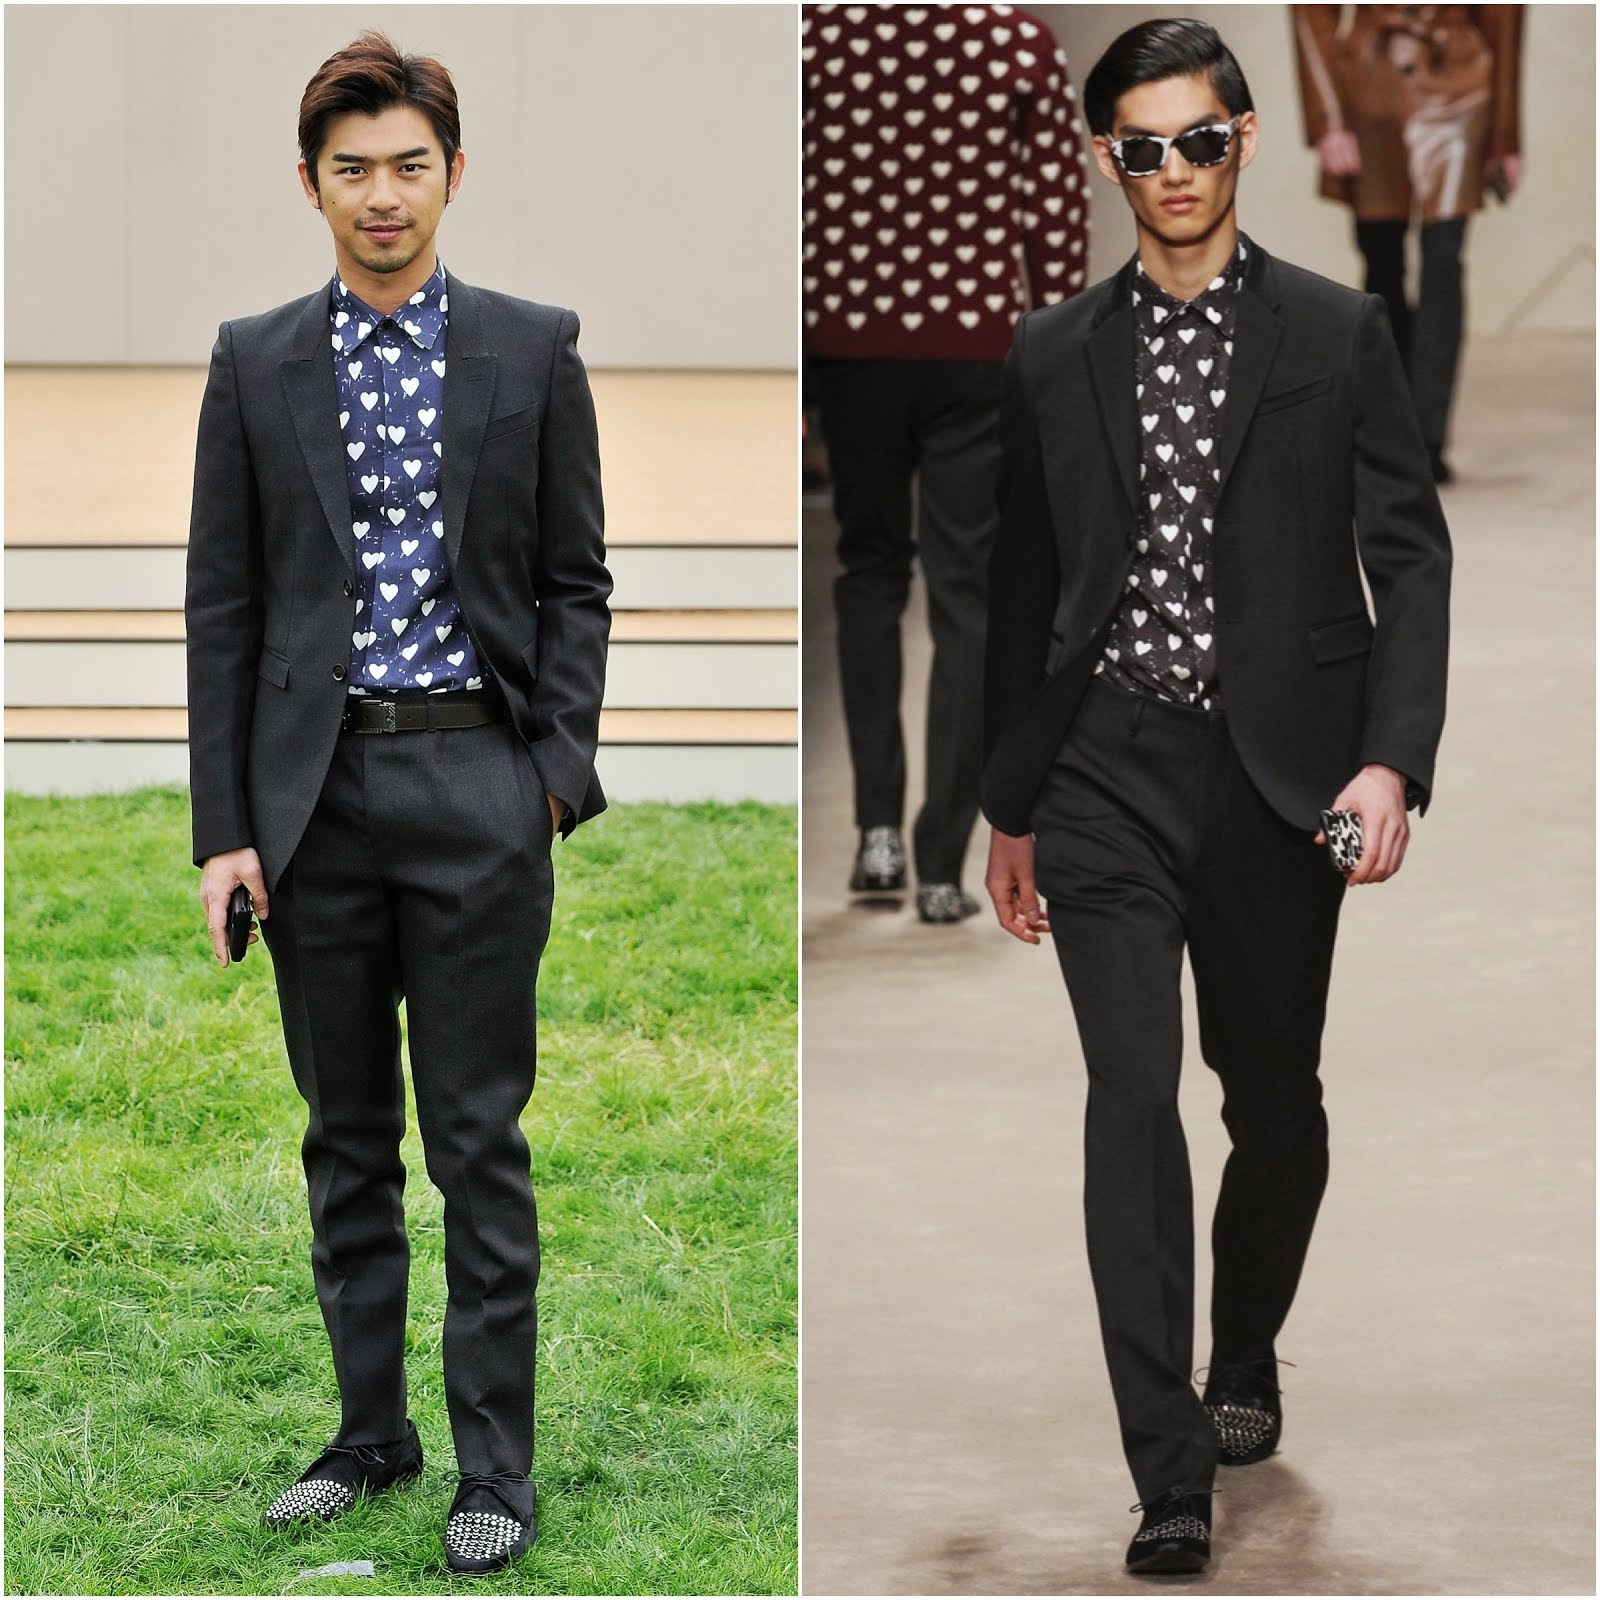 00O00 Menswear Blog: Chen Bolin [陳柏霖] in Burberry Prorsum - Burberry Prorsum Menswear Spring Summer 2014, London